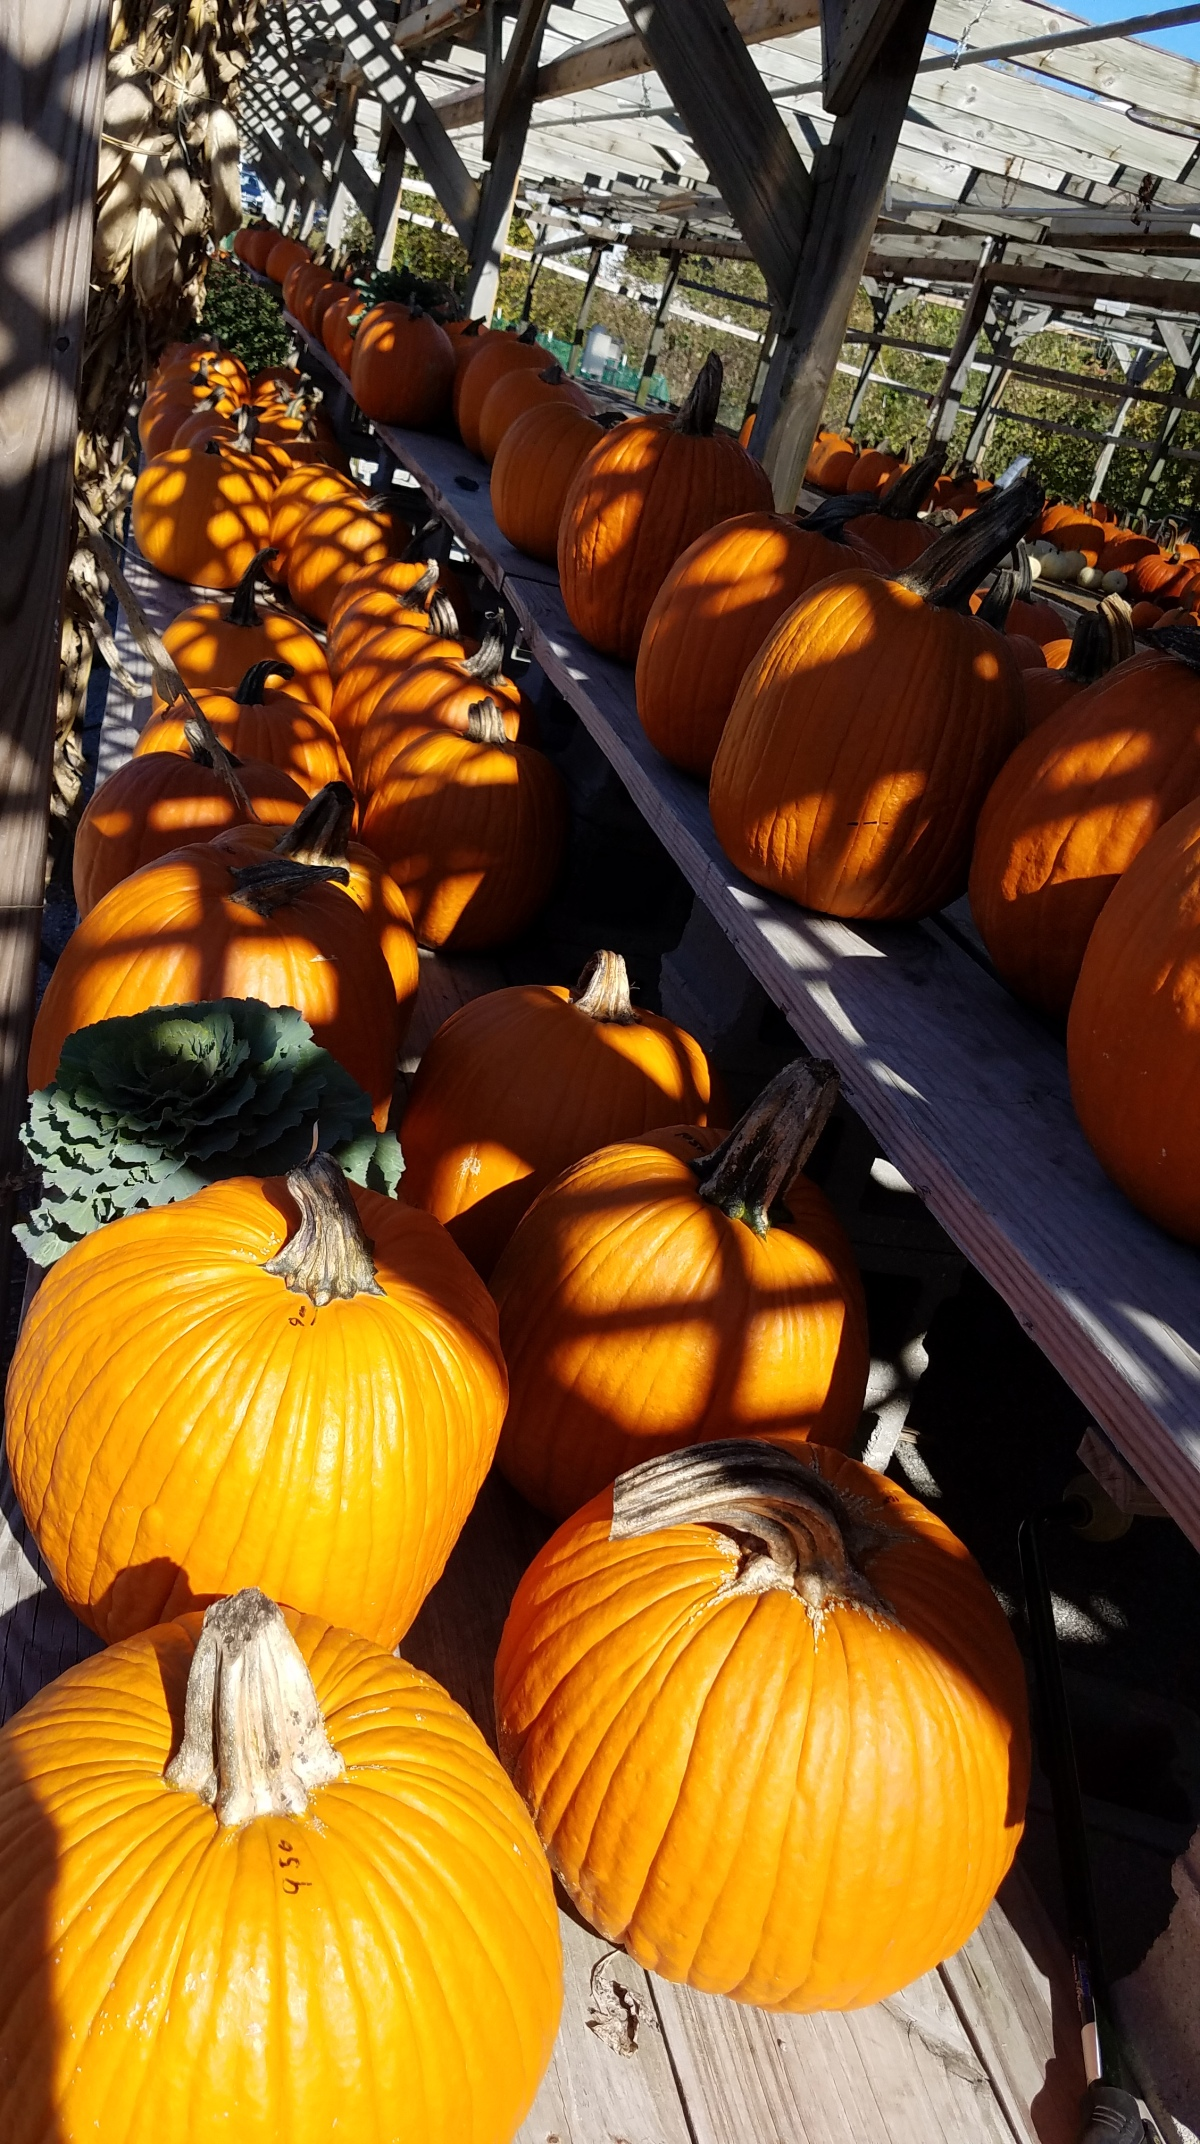 Pumpkins All In A Row